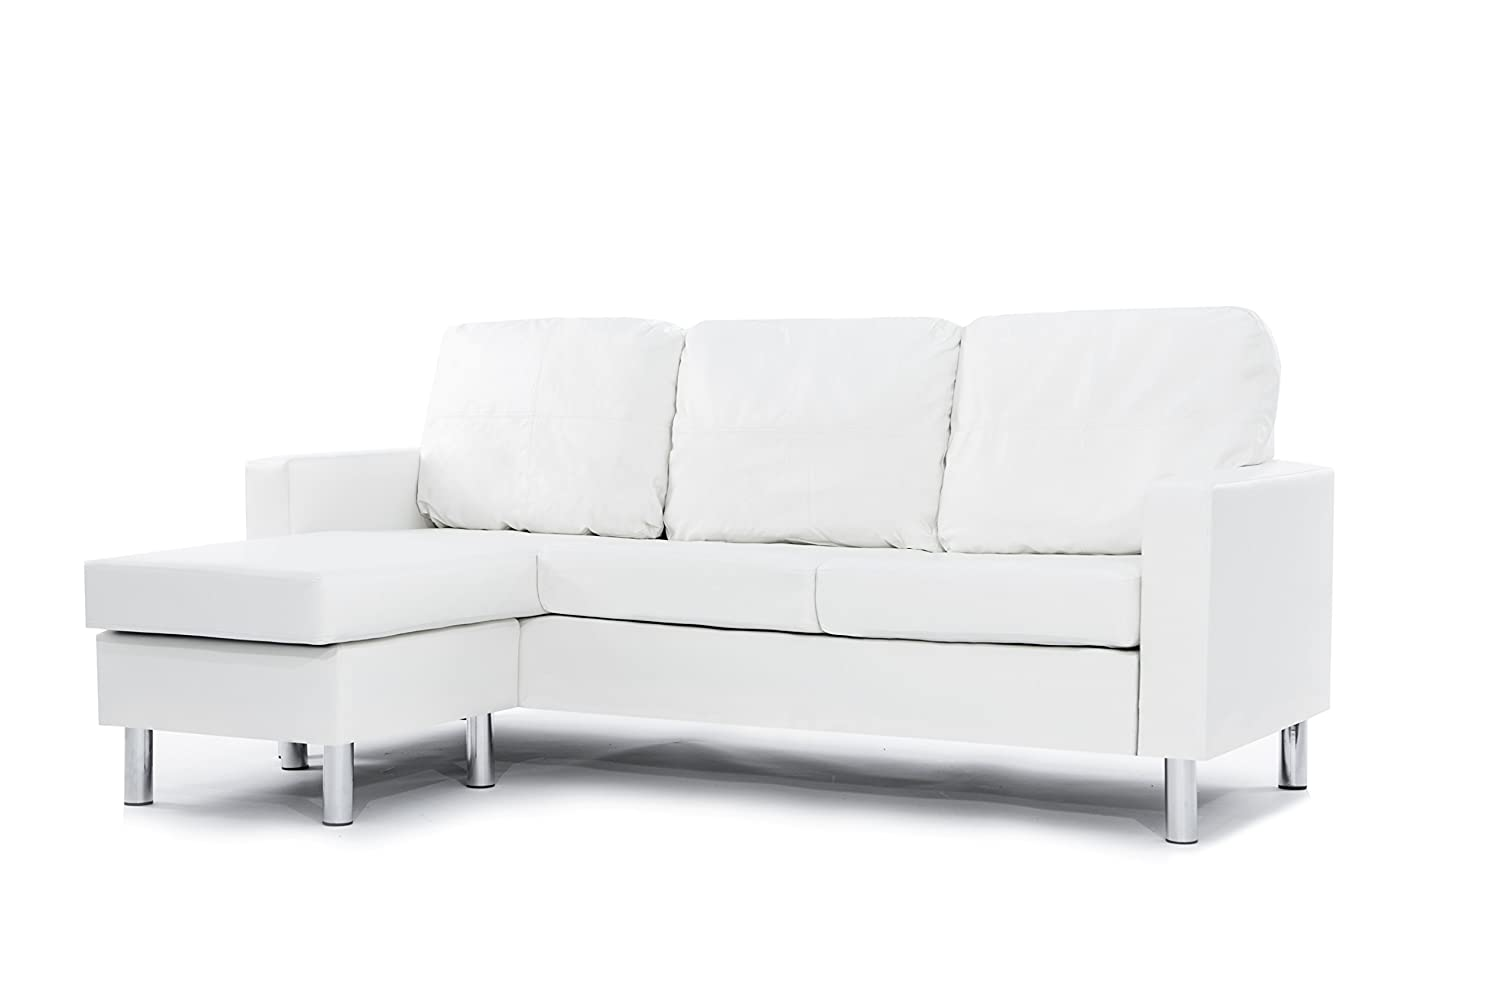 Design Small Space Sofas amazon com modern bonded leather sectional sofa small space configurable couch white kitchen dining